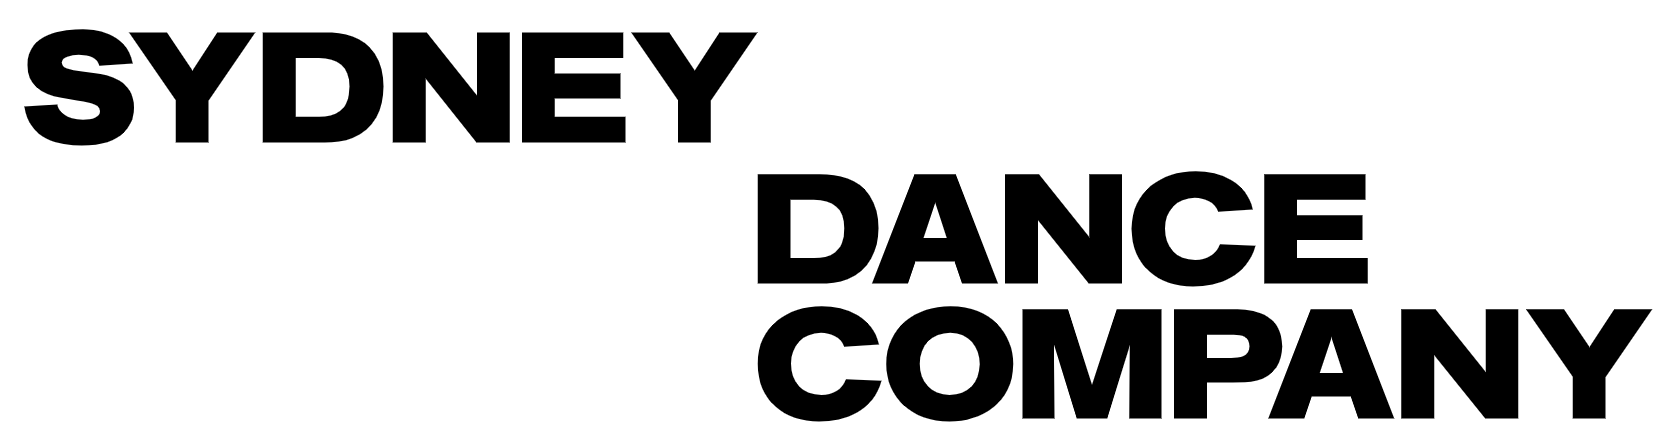 New Logo and Identity for Sydney Dance Company by Maud